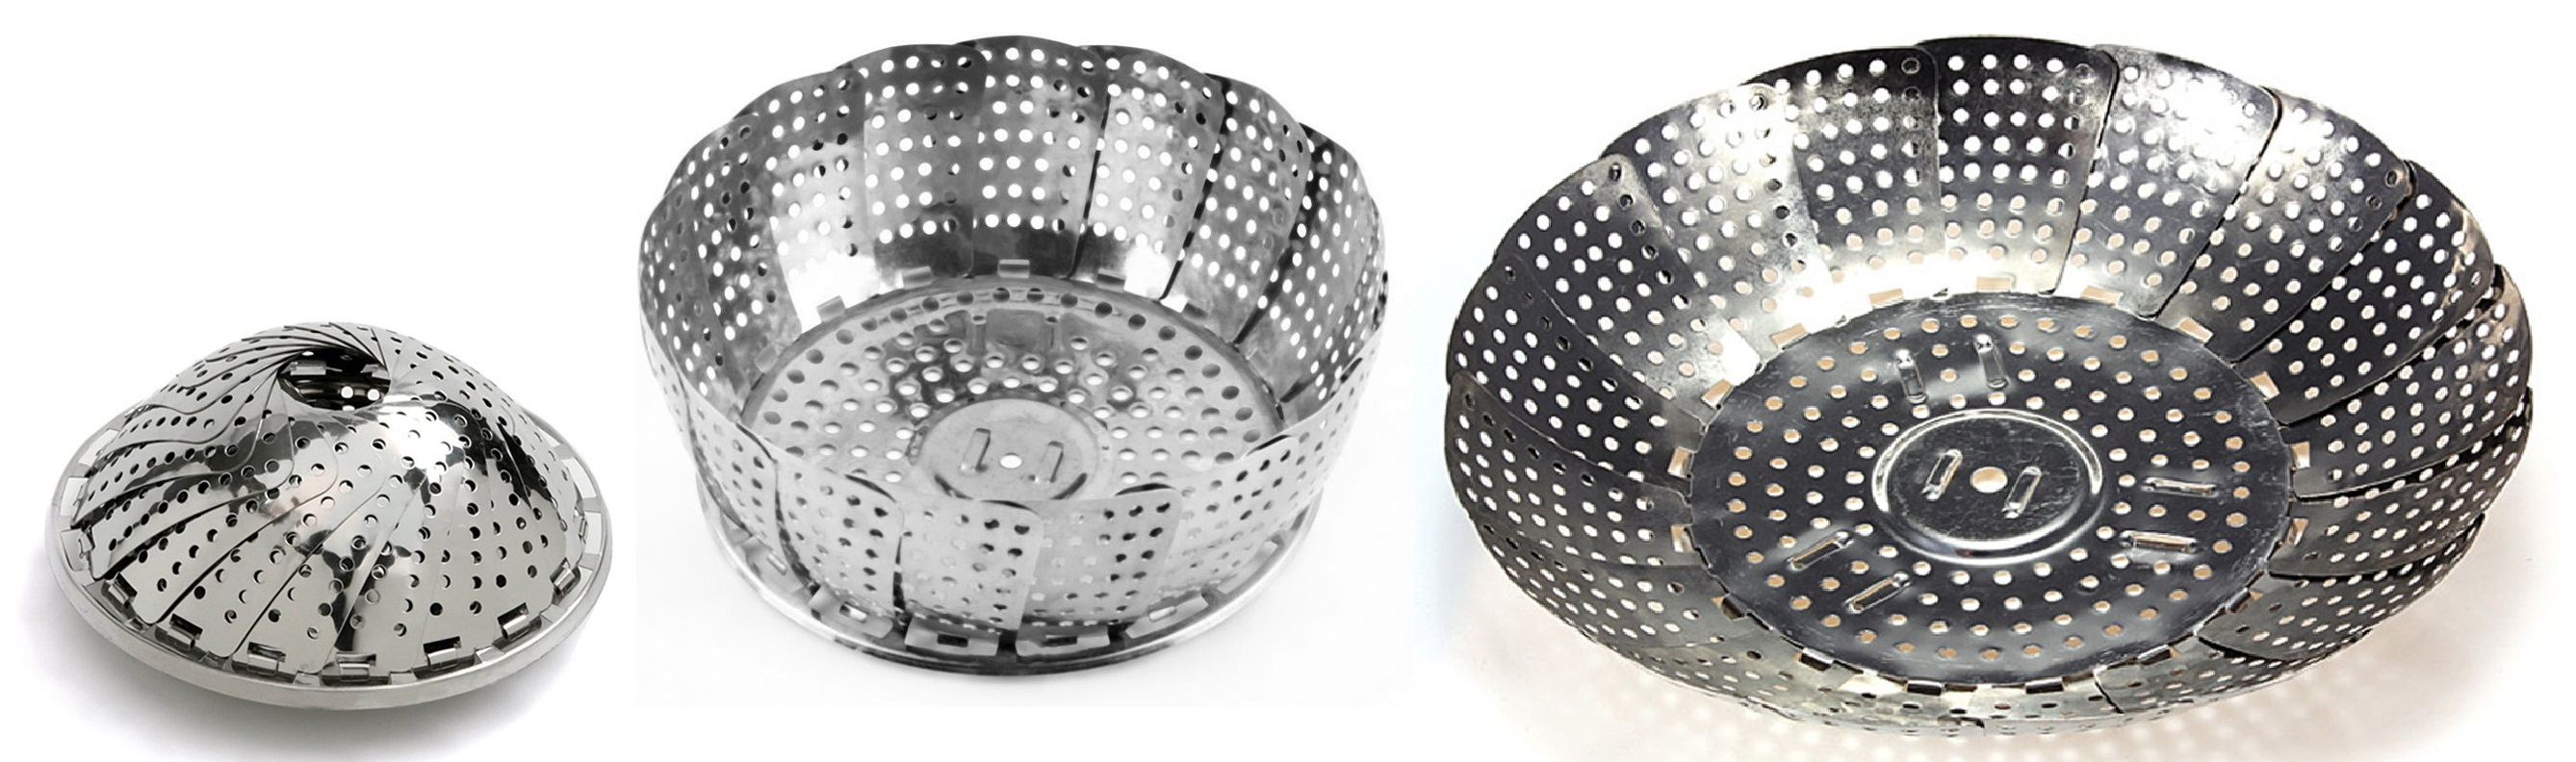 Collapsible Stainless Steel Steamer Basket (aka Flower-shaped Basket)